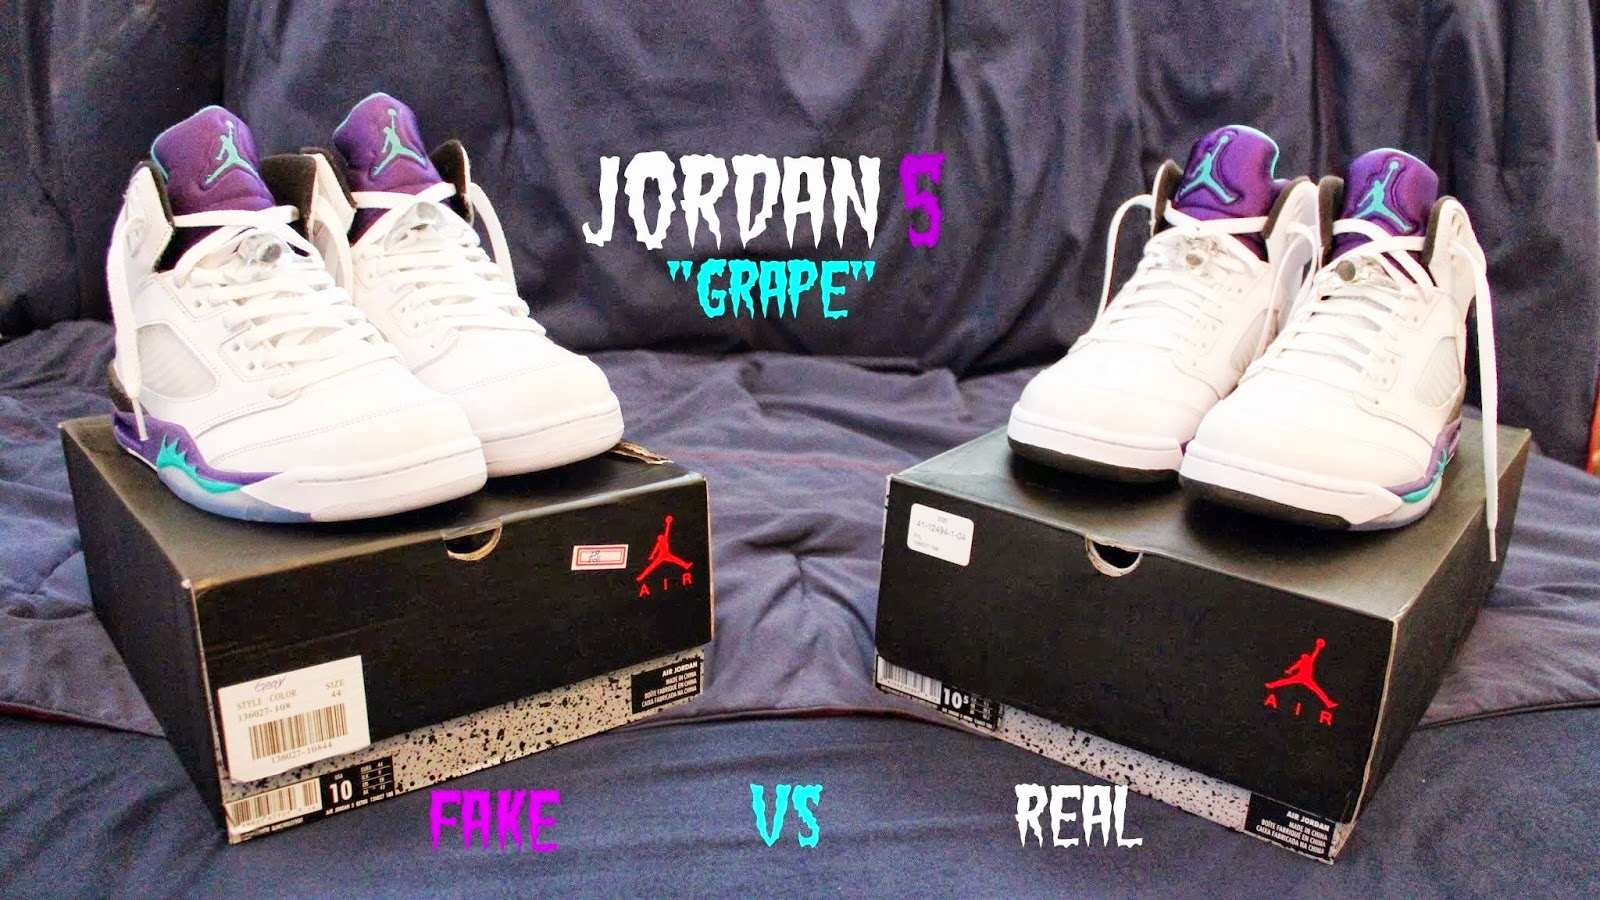 To replica or not to replica: that is the real Jordan